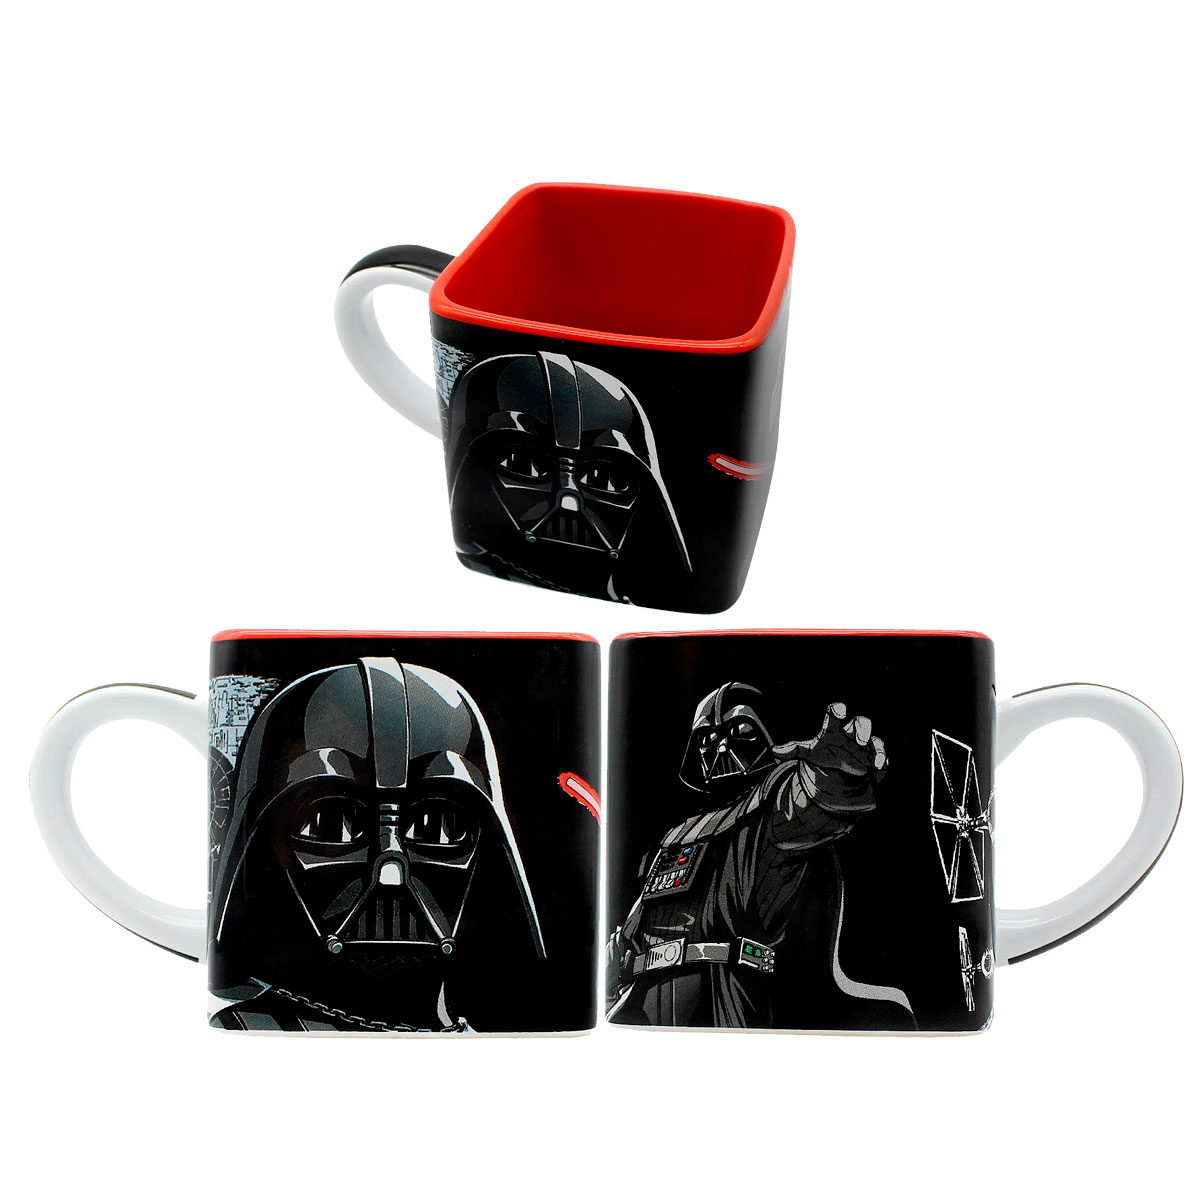 Caneca Quadrada Cubo Darth Vader Star Wars - Presente Super